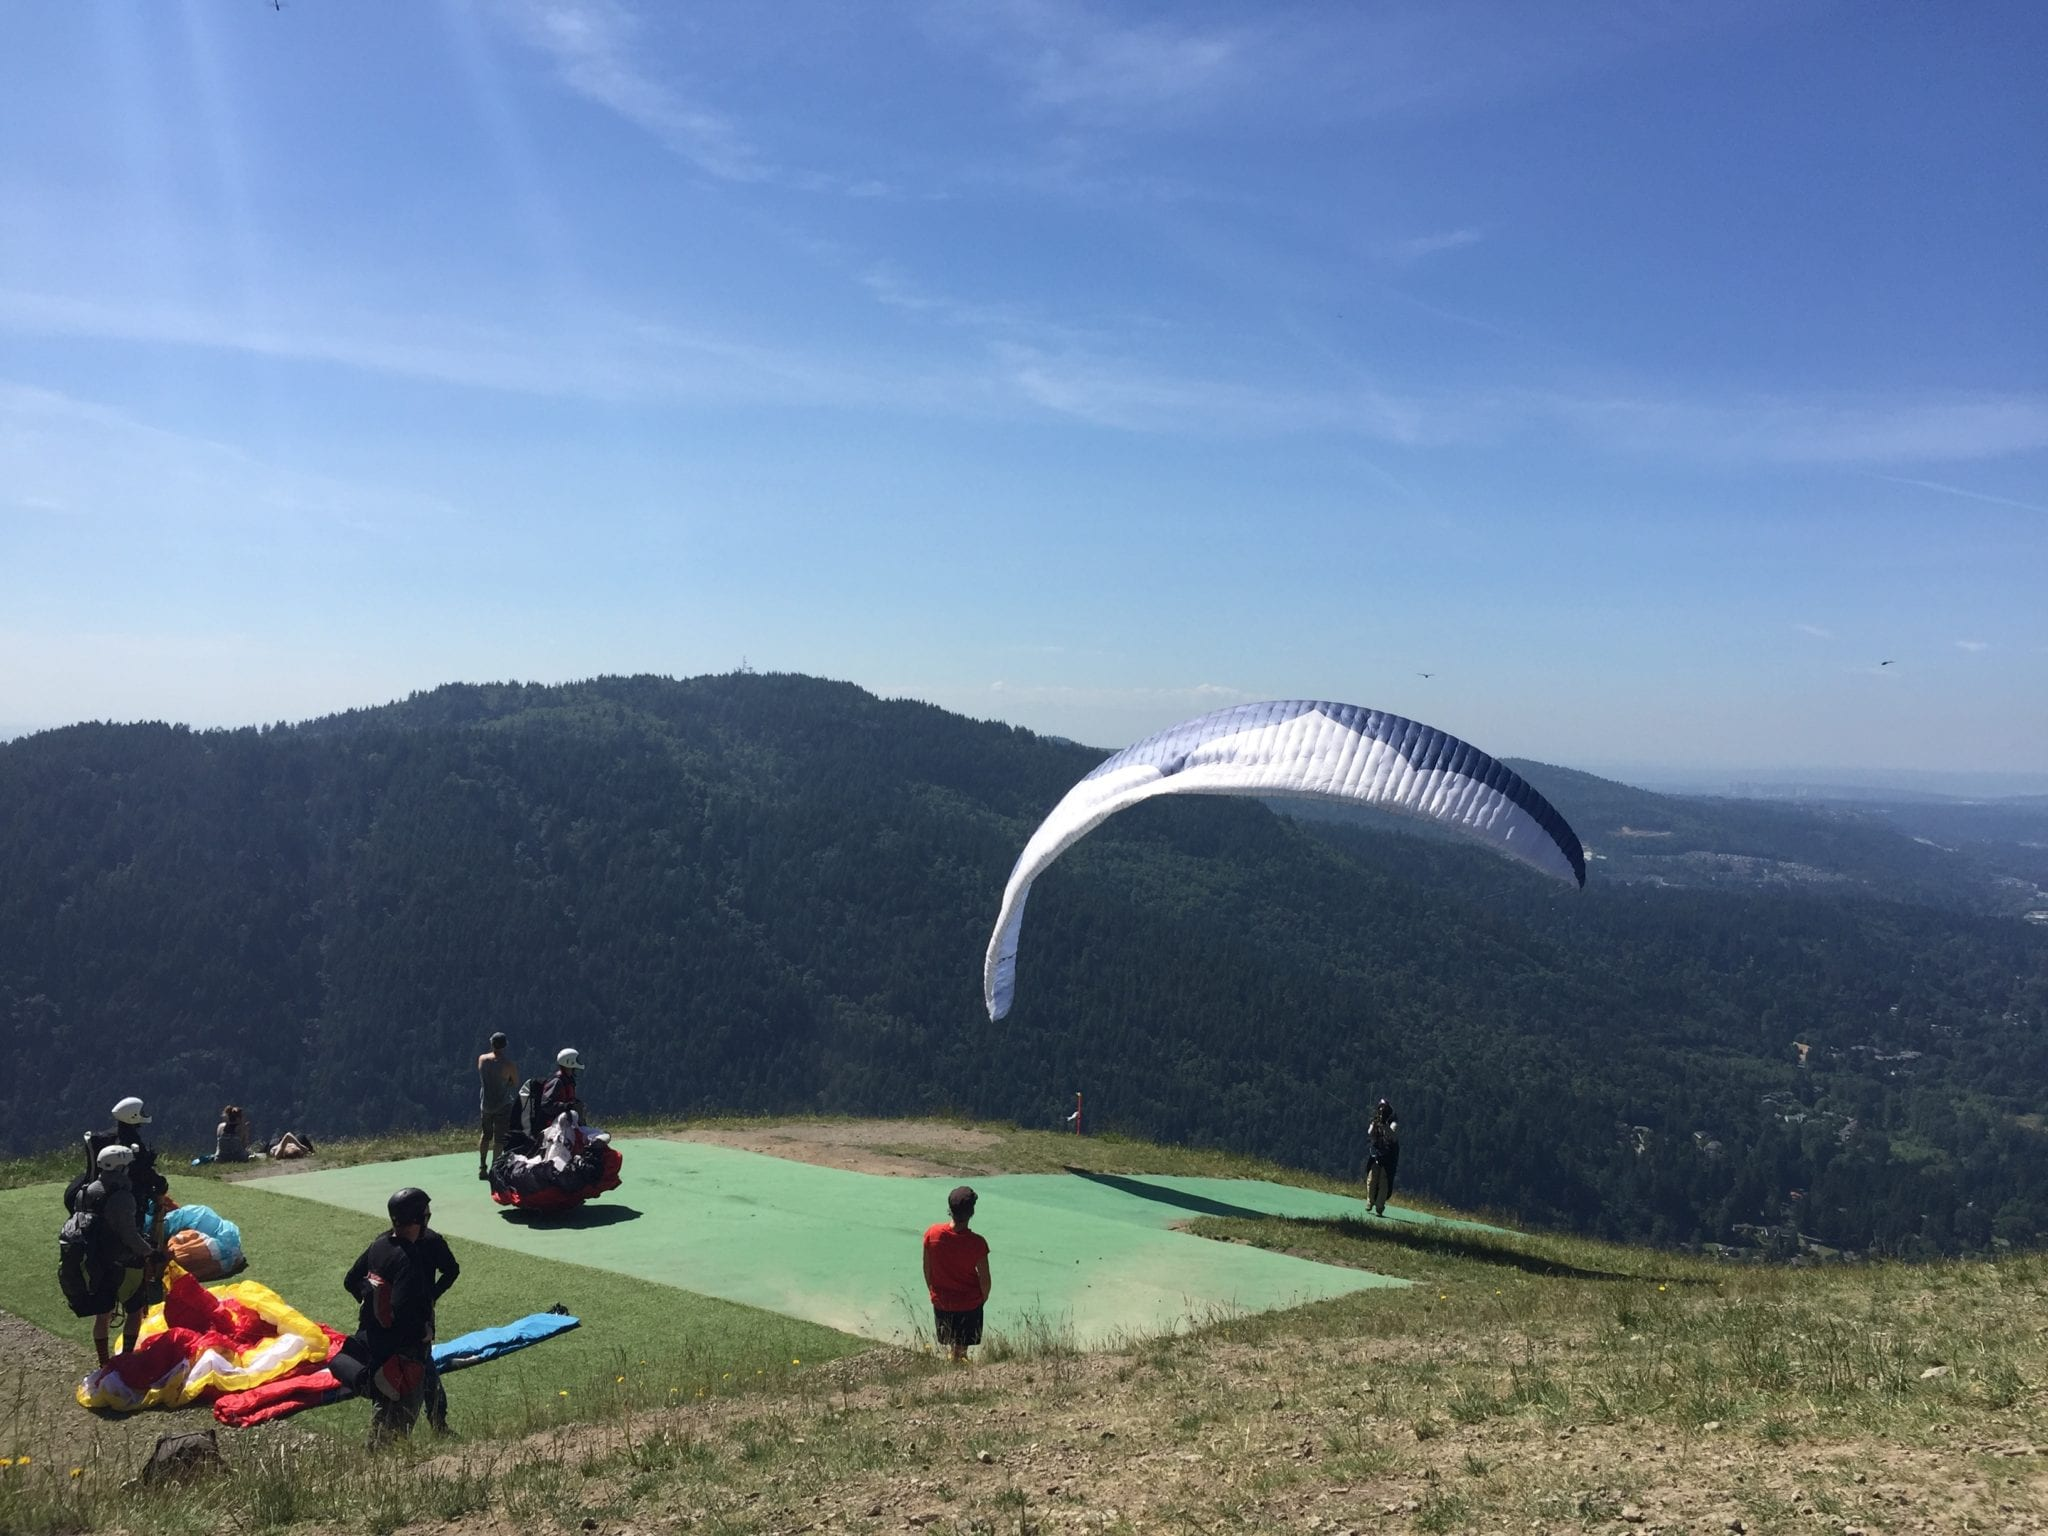 Paragliders in the Cascade Foothills